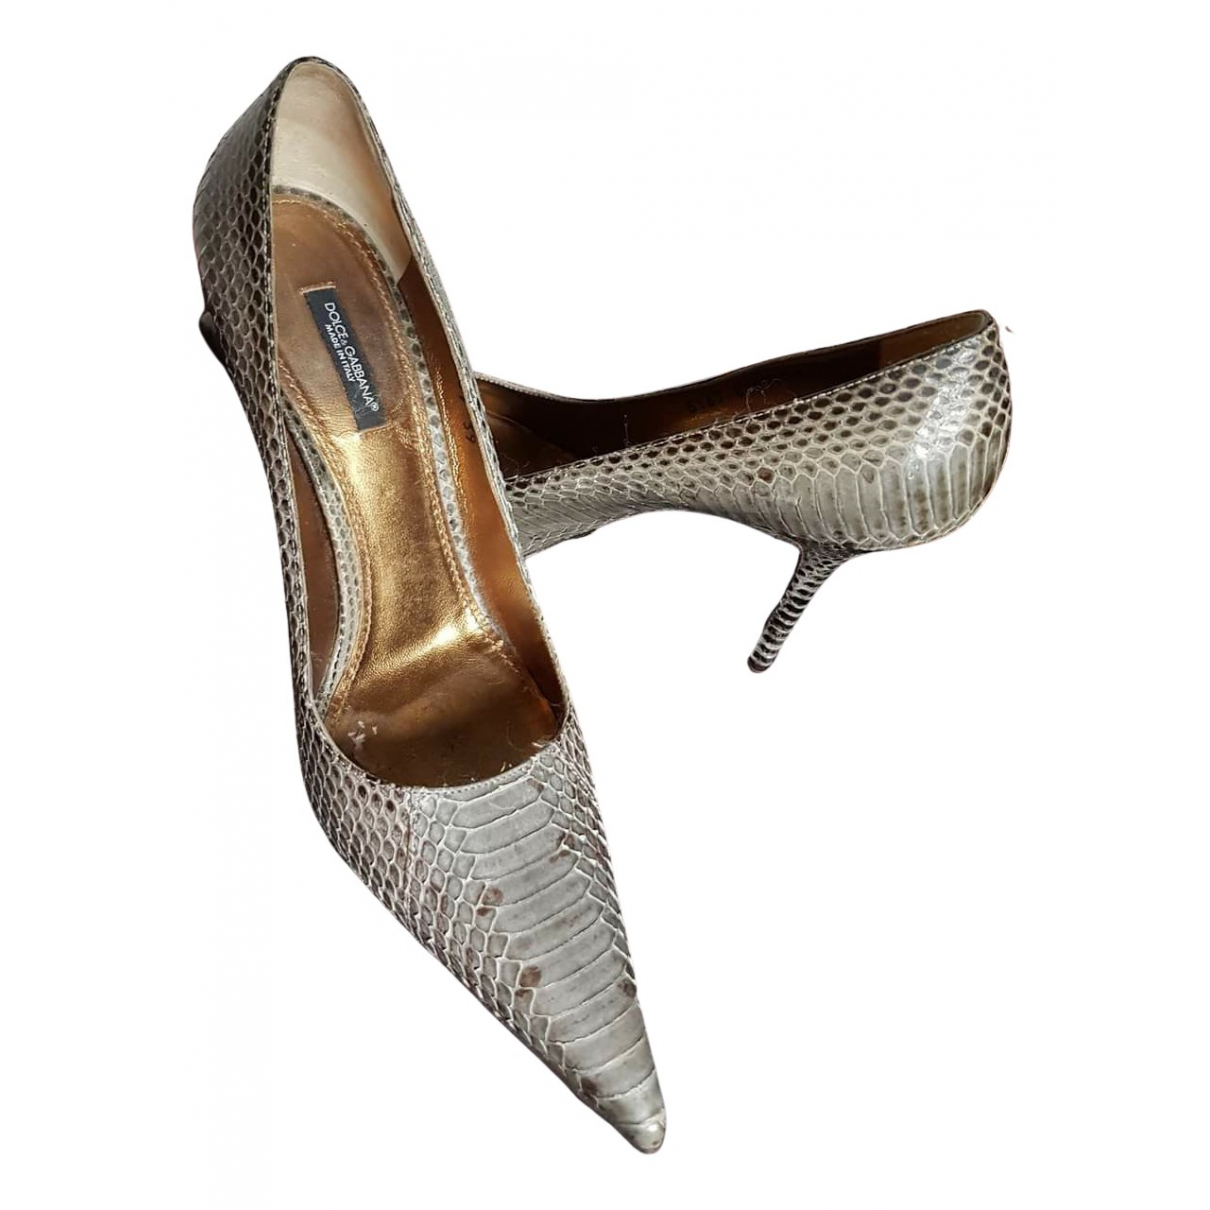 Dolce & Gabbana N Beige Python Heels for Women 39 IT